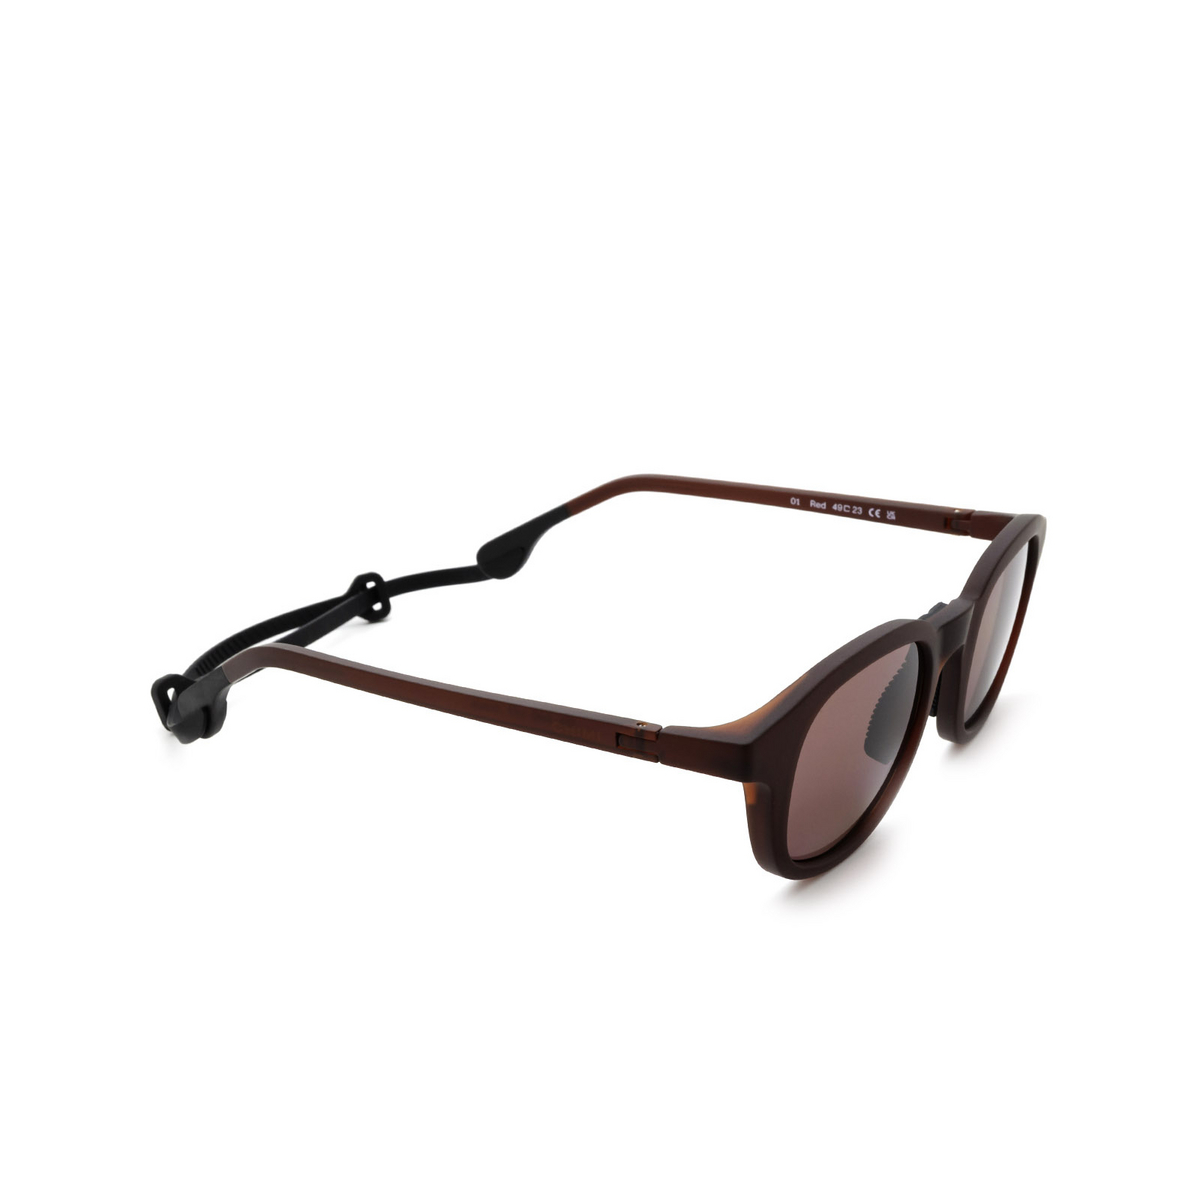 Chimi® Square Sunglasses: 01 ACTIVE color Red - three-quarters view.